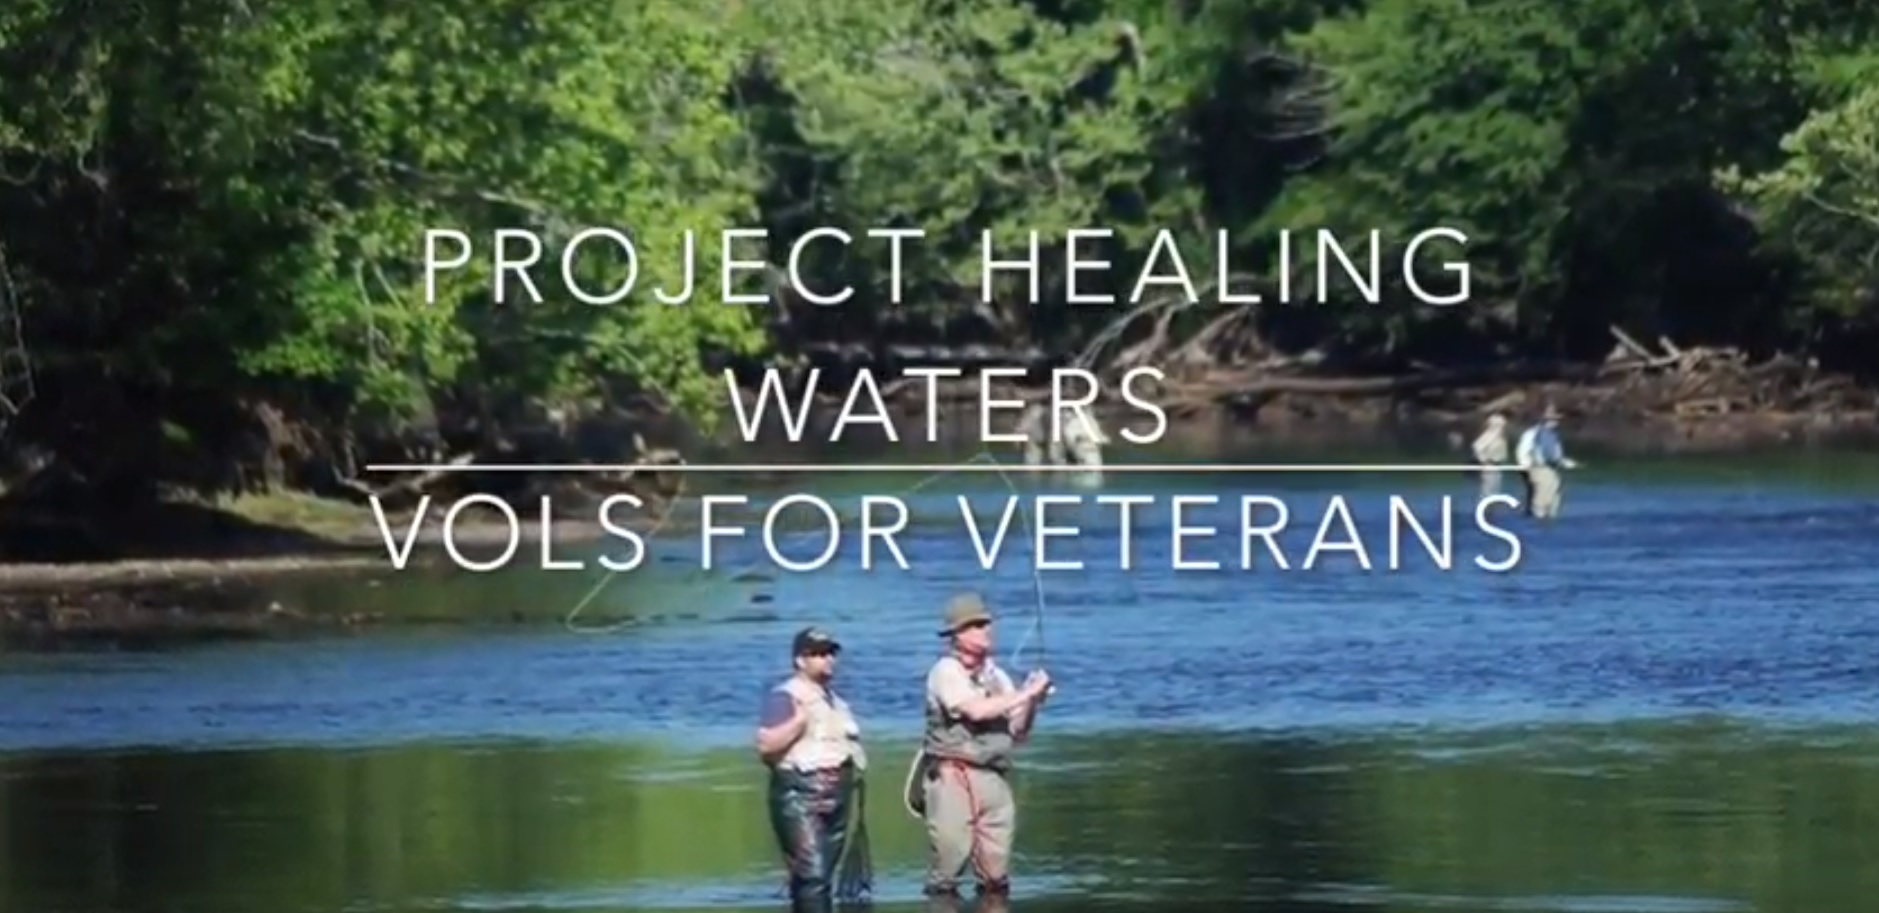 Vols for Veterans support Project Healing Waters Fly Fishing